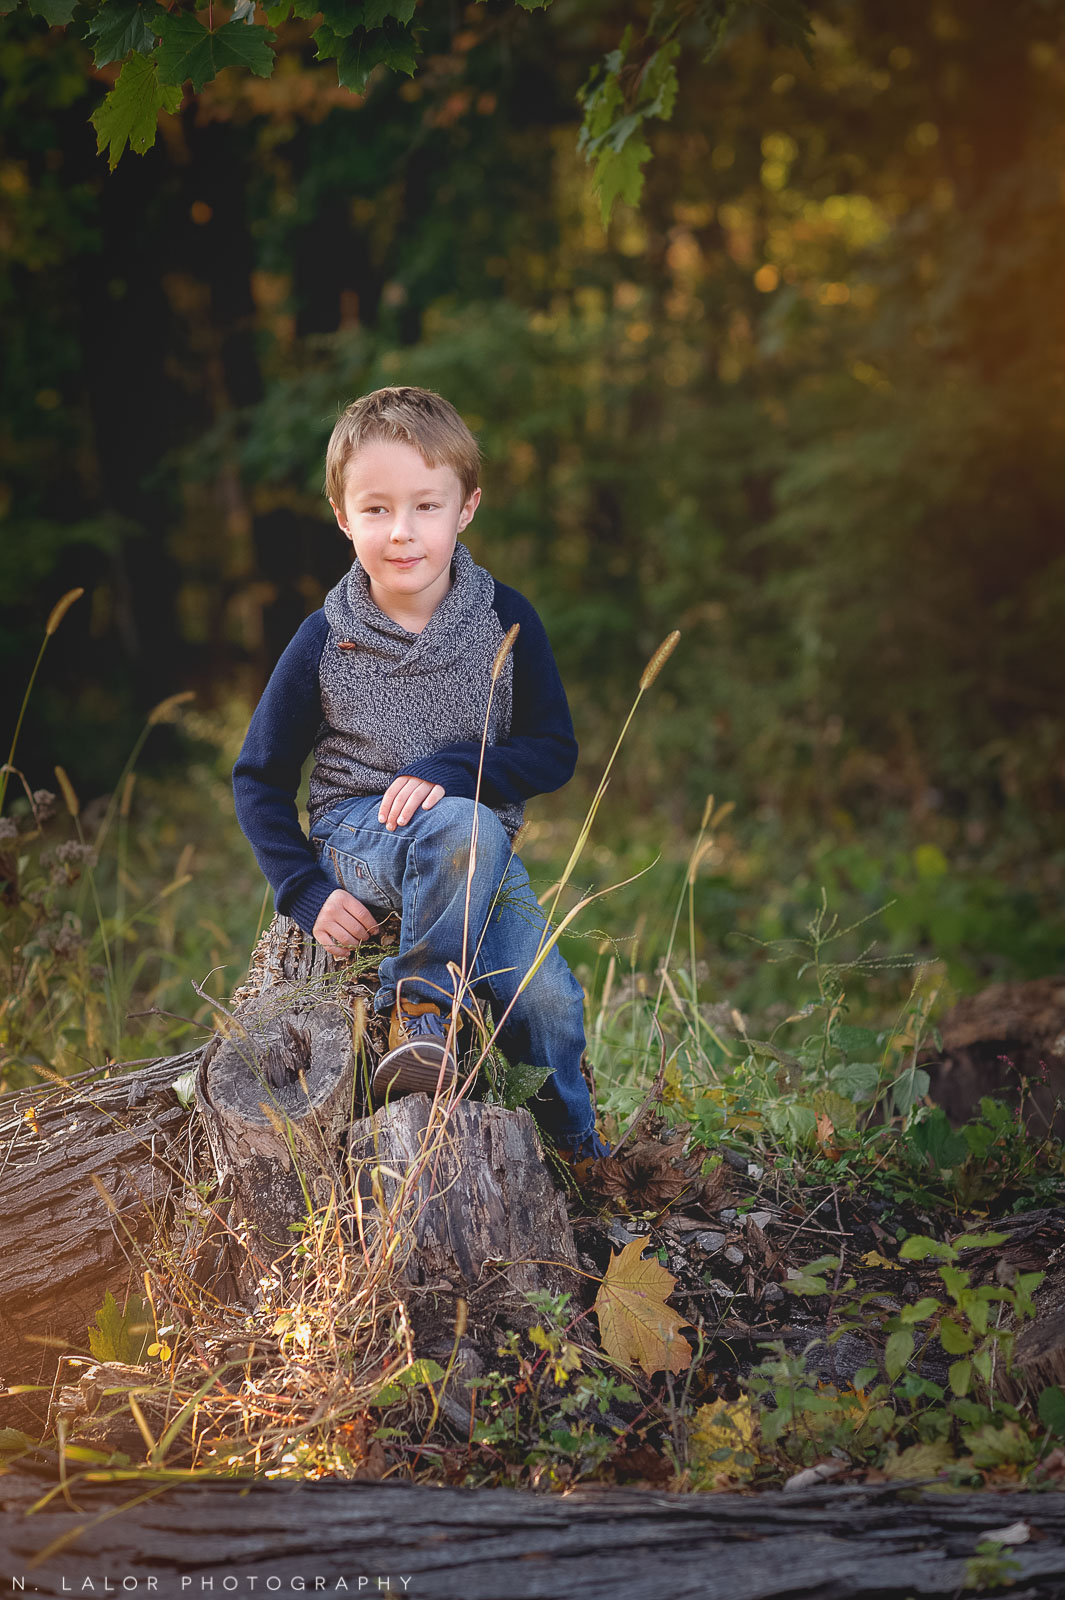 nlalor-photography-2014-styled-family-life-new-canaan-nature-center-fall-8.jpg